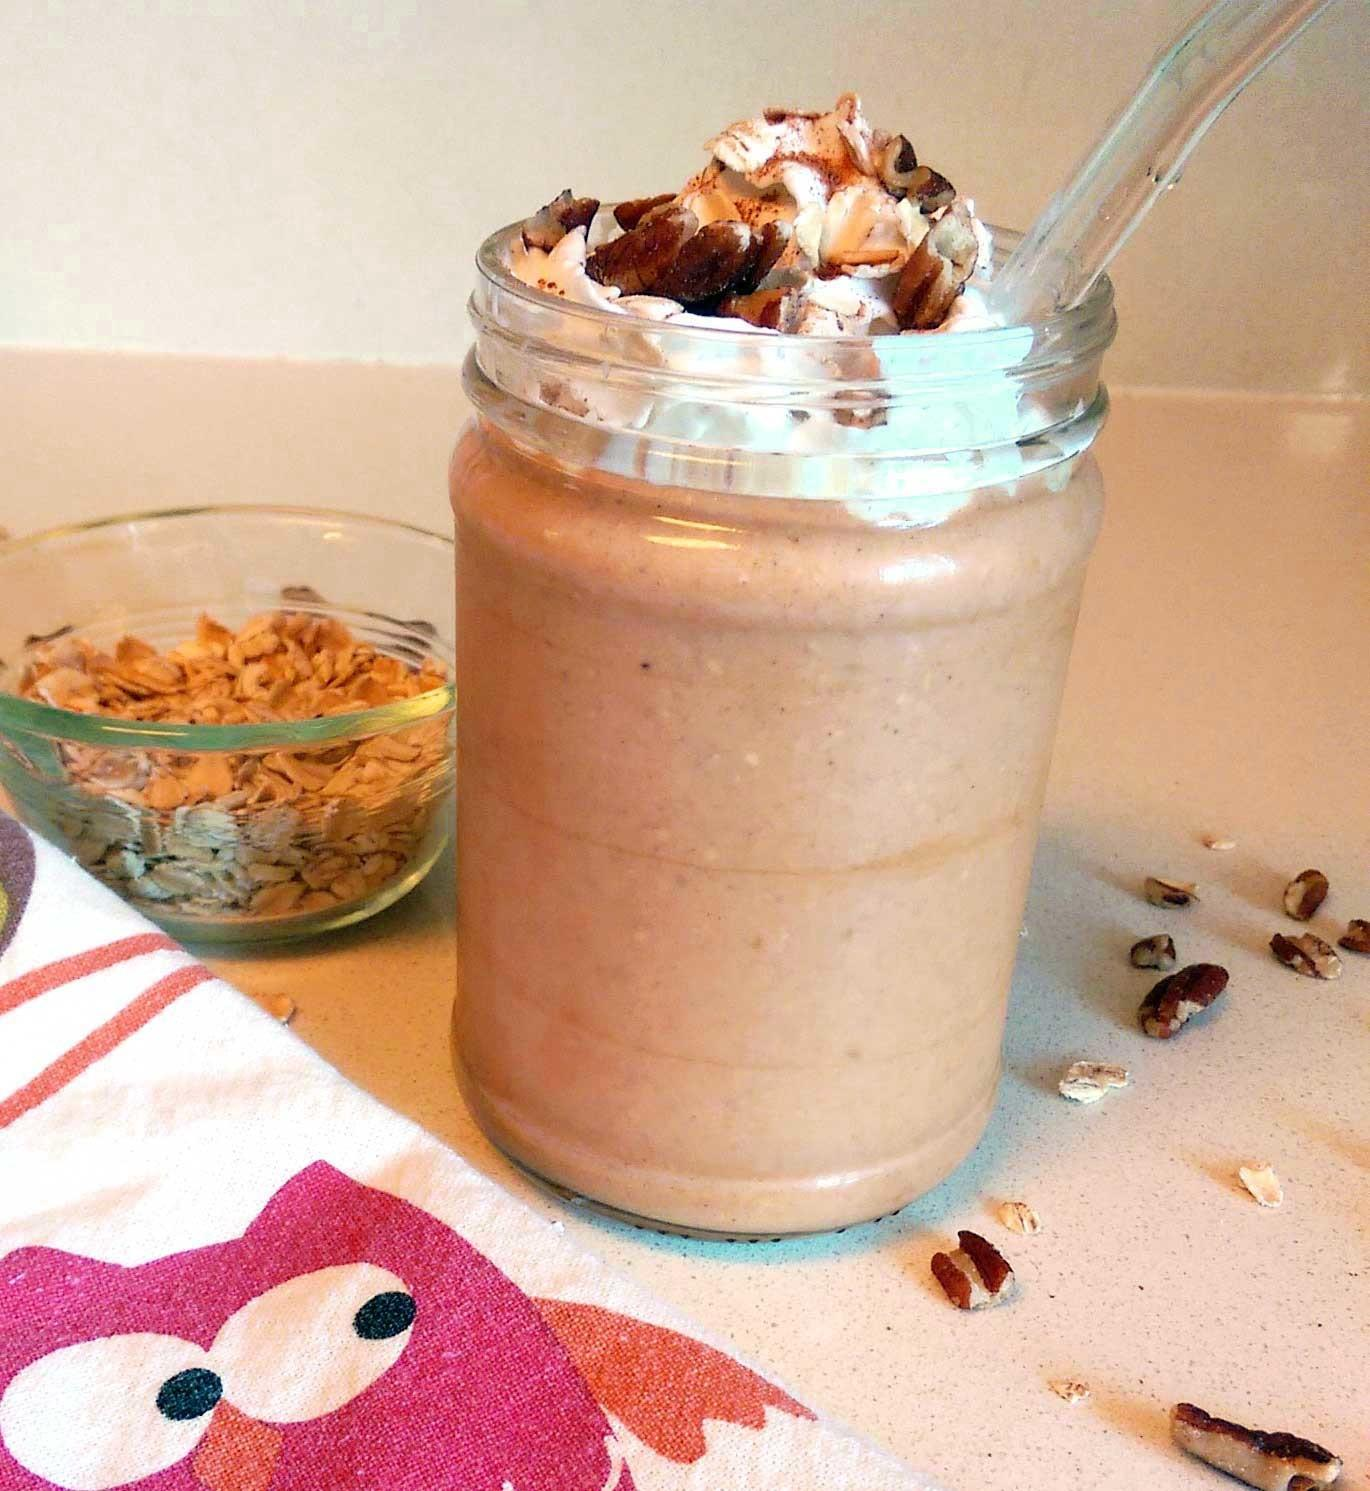 Home Healthy Recipes Smoothies Fall Smoothie